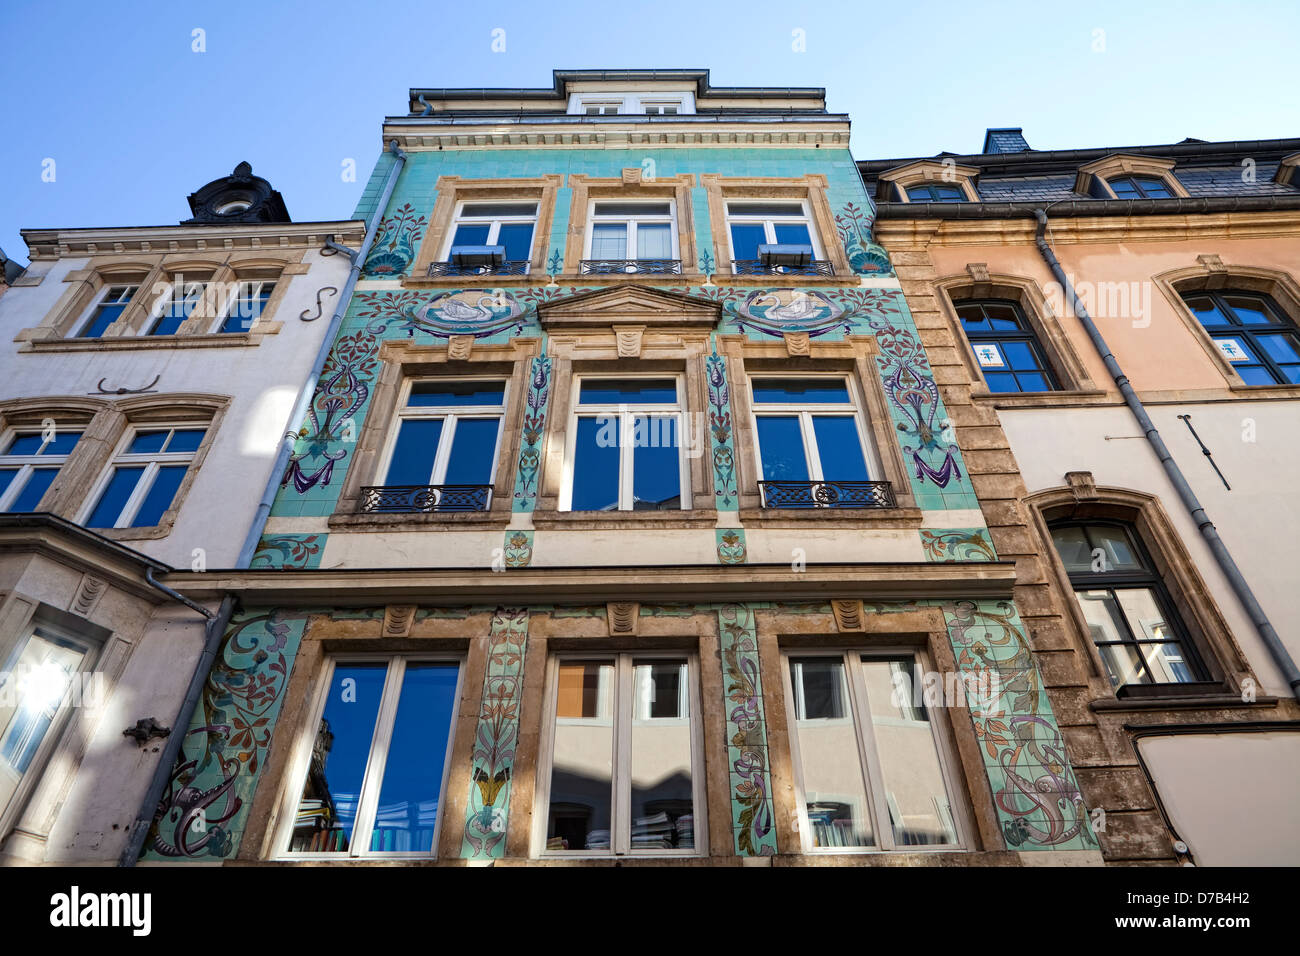 Restored art nouveau facade, Luxembourg City, Europe - Stock Image